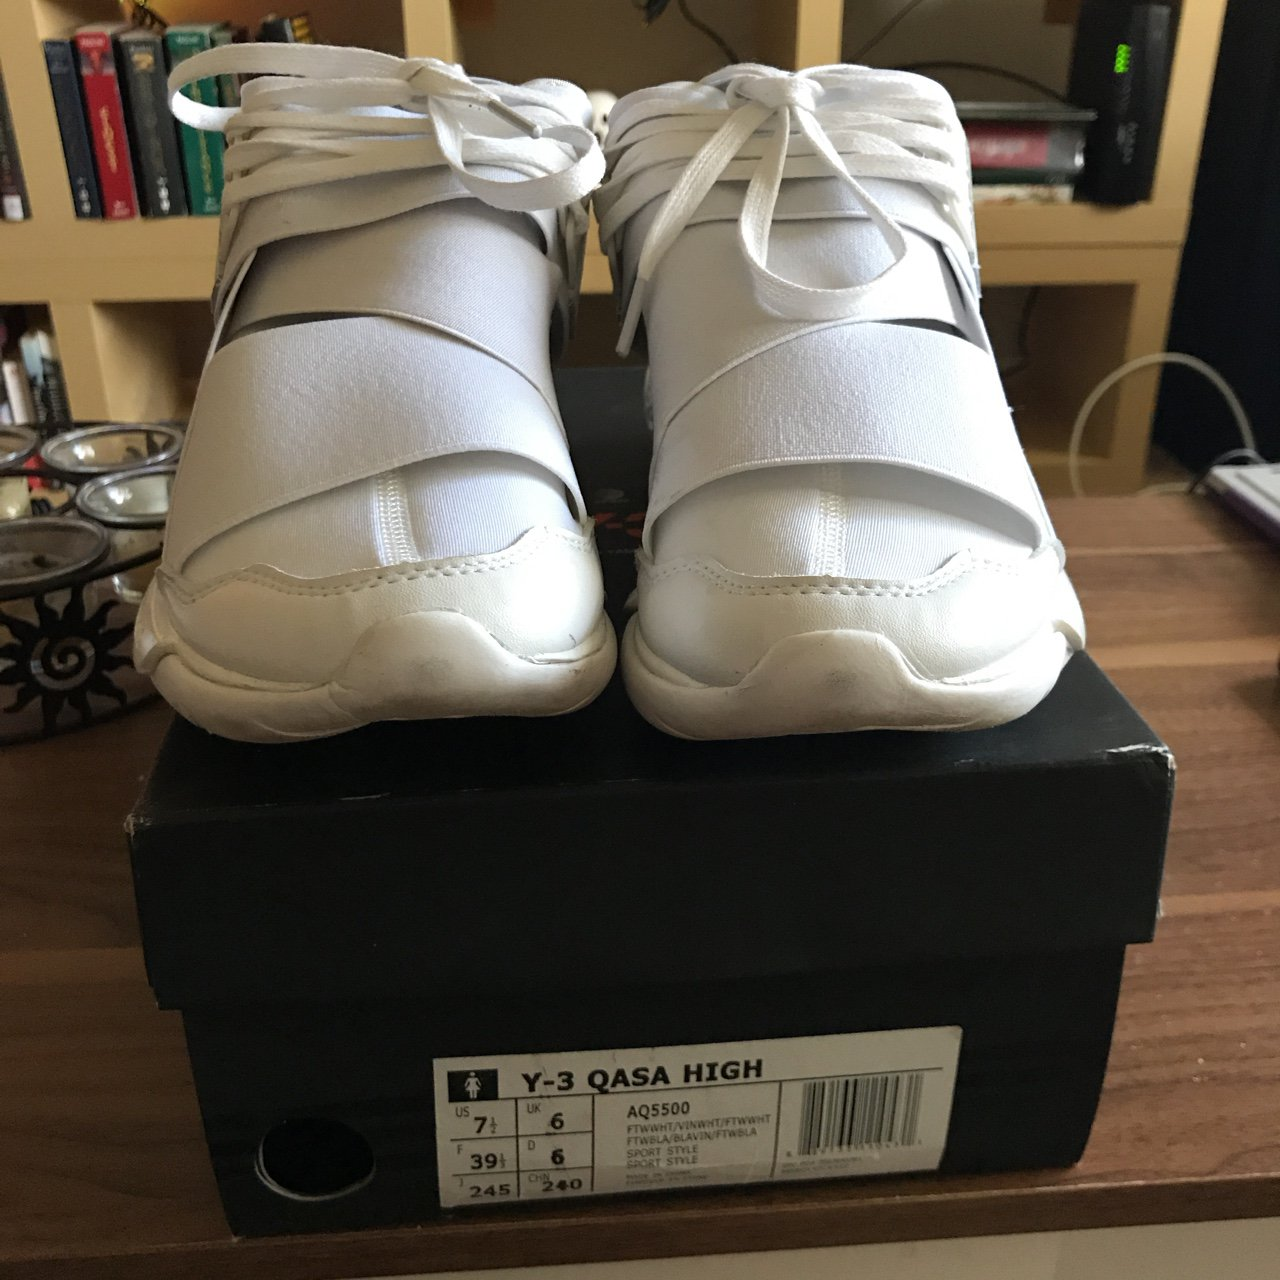 Y-3 Qasa High. Size  US women s 7.5 or UK 6. Great condition - Depop 4b88d33778